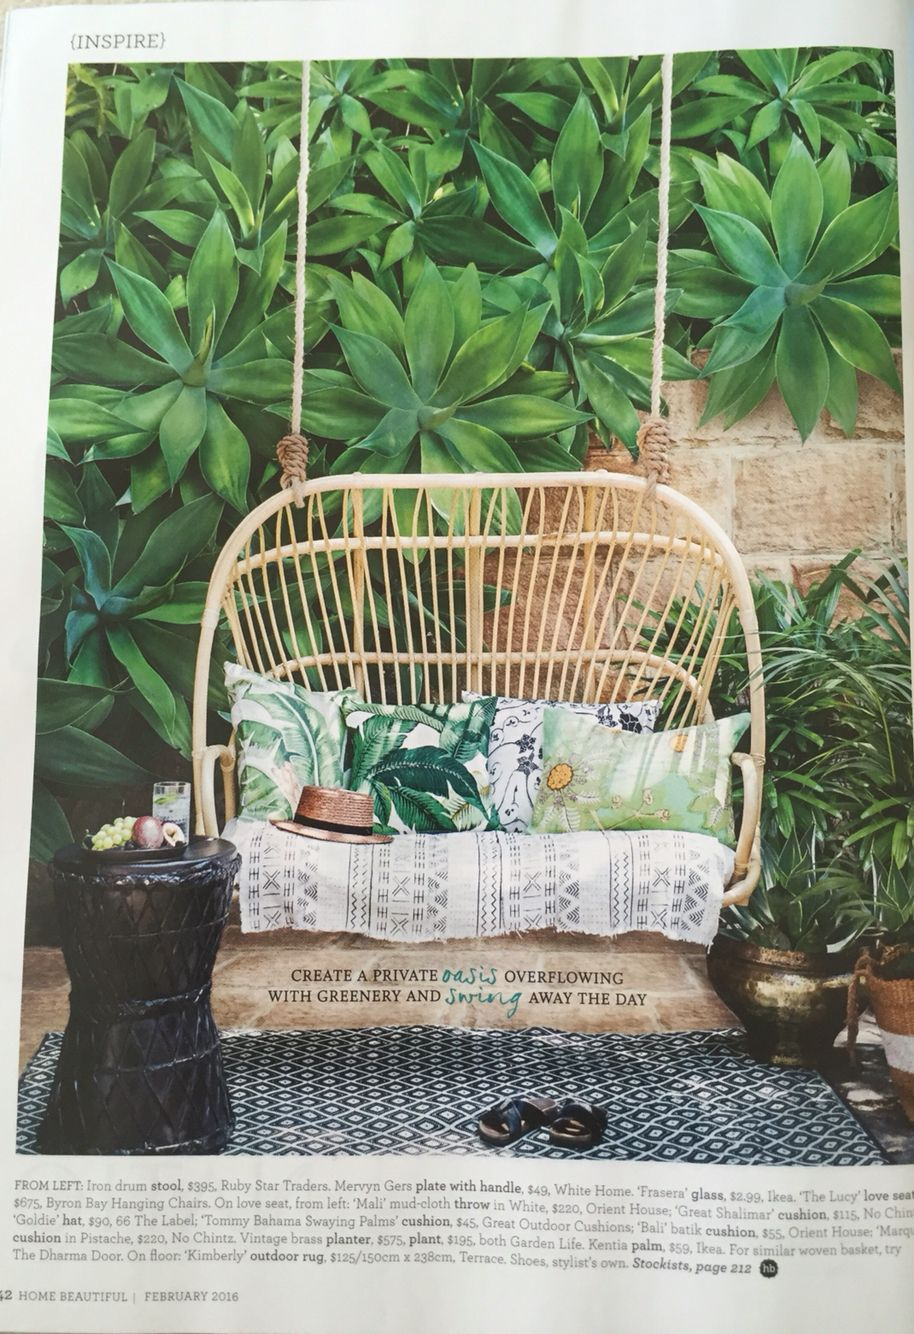 Love This 2 Seater Cane Chair Devine House Garden Feb 2016 Byron Bay Hanging Chairs The Lucy Love Seat 675 Outdoor Hanging Chair Australian Home